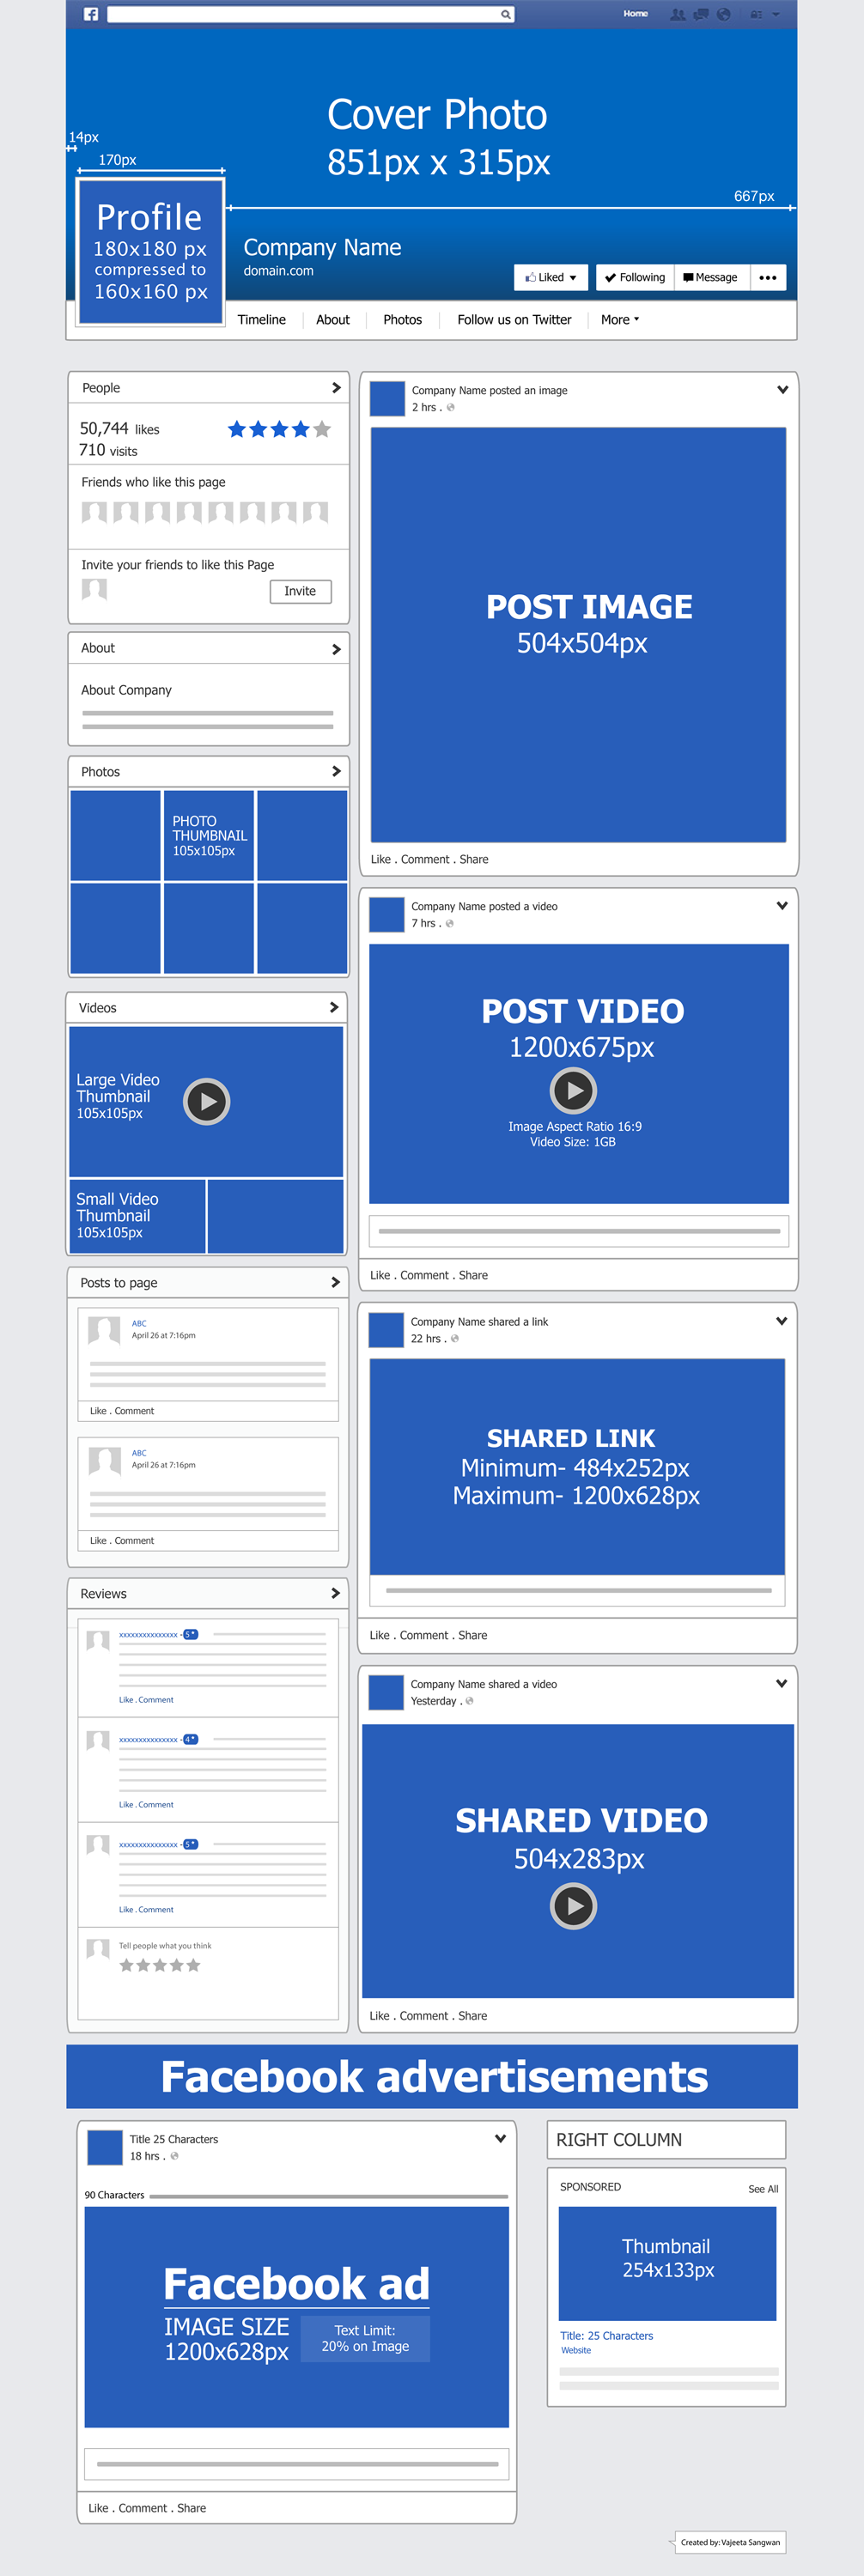 Looking for ways to effectively design your Fb post? Here's